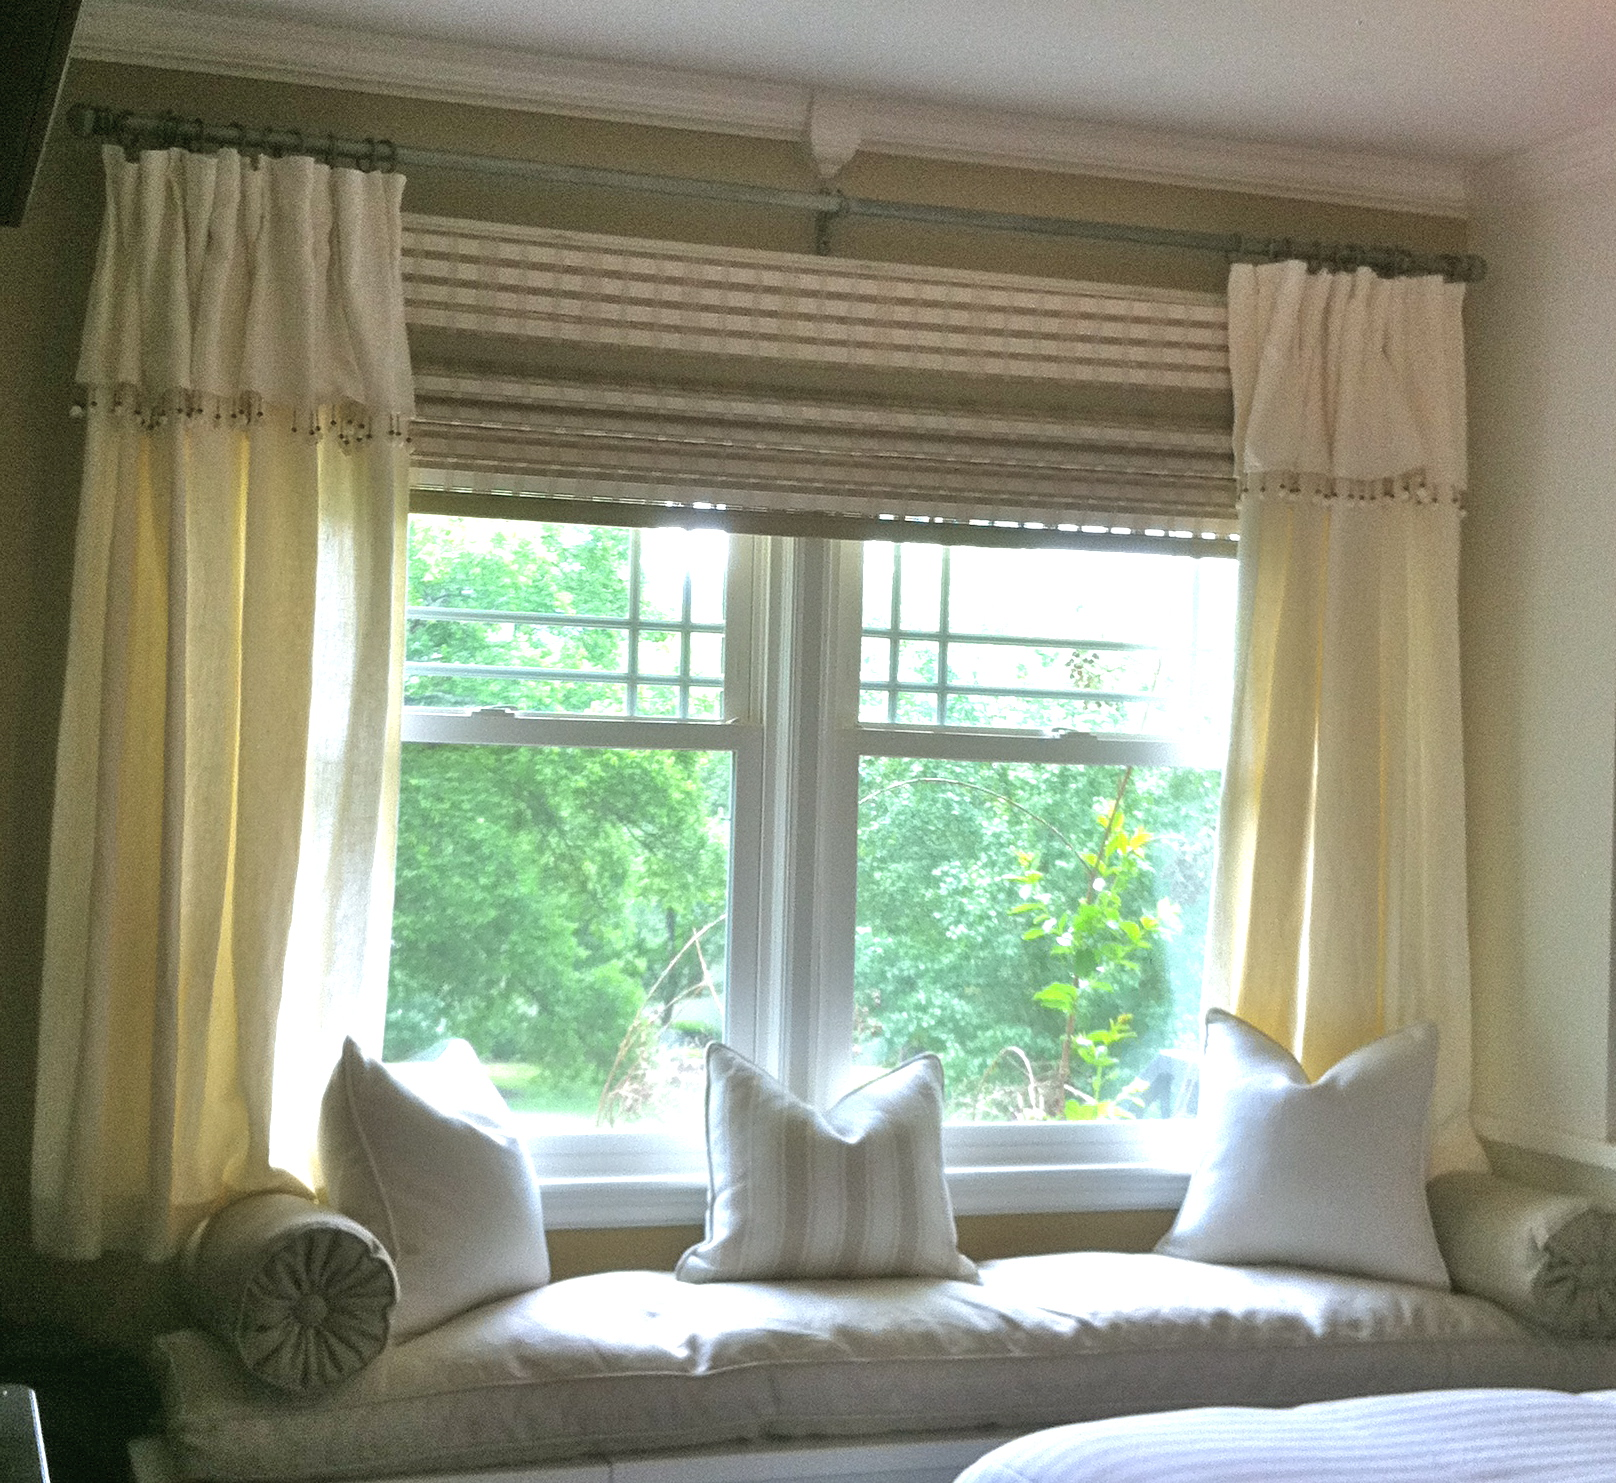 Inside house windows with curtains - Light Cream Color Large Window Curtains Cozy And Luxurious Daybed Furniture With Decorative Pillows